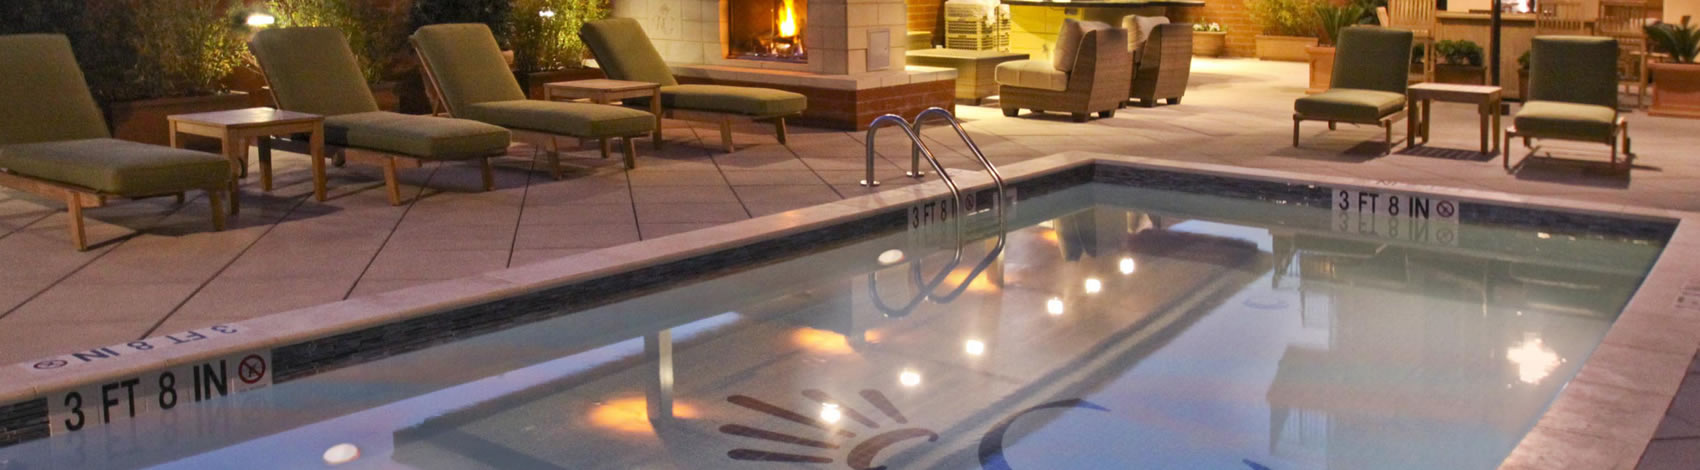 stainless aquatics stainless steel pools and spas. Black Bedroom Furniture Sets. Home Design Ideas